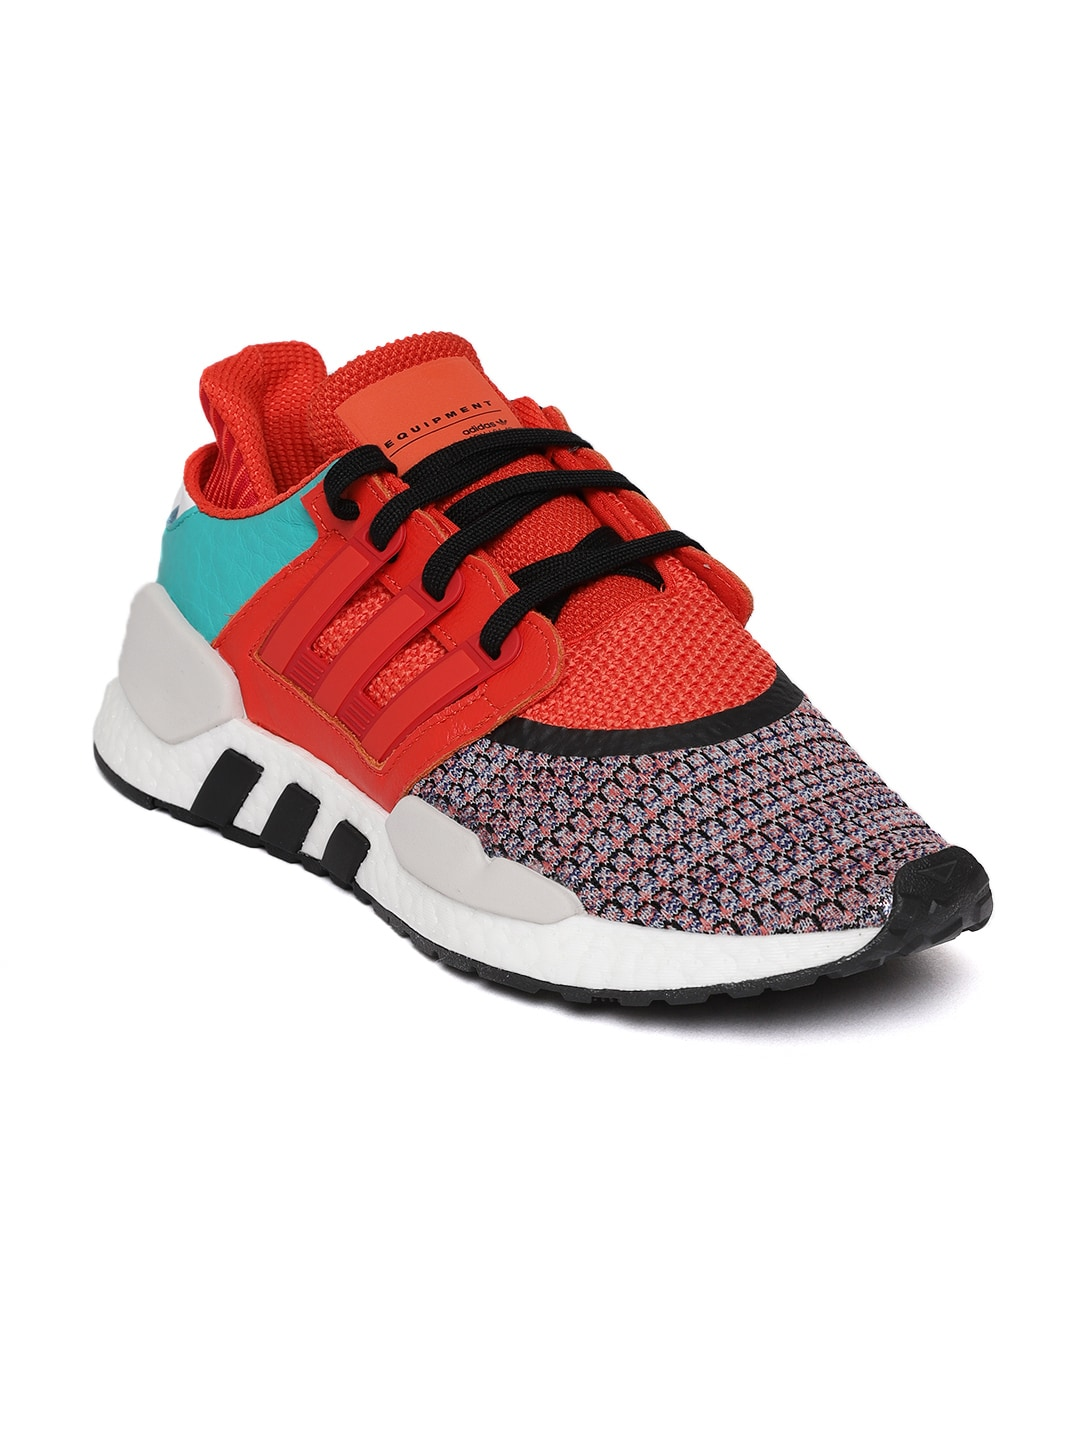 469a21408e5a23 Men s Adidas Originals Shoes - Buy Adidas Originals Shoes for Men Online in  India